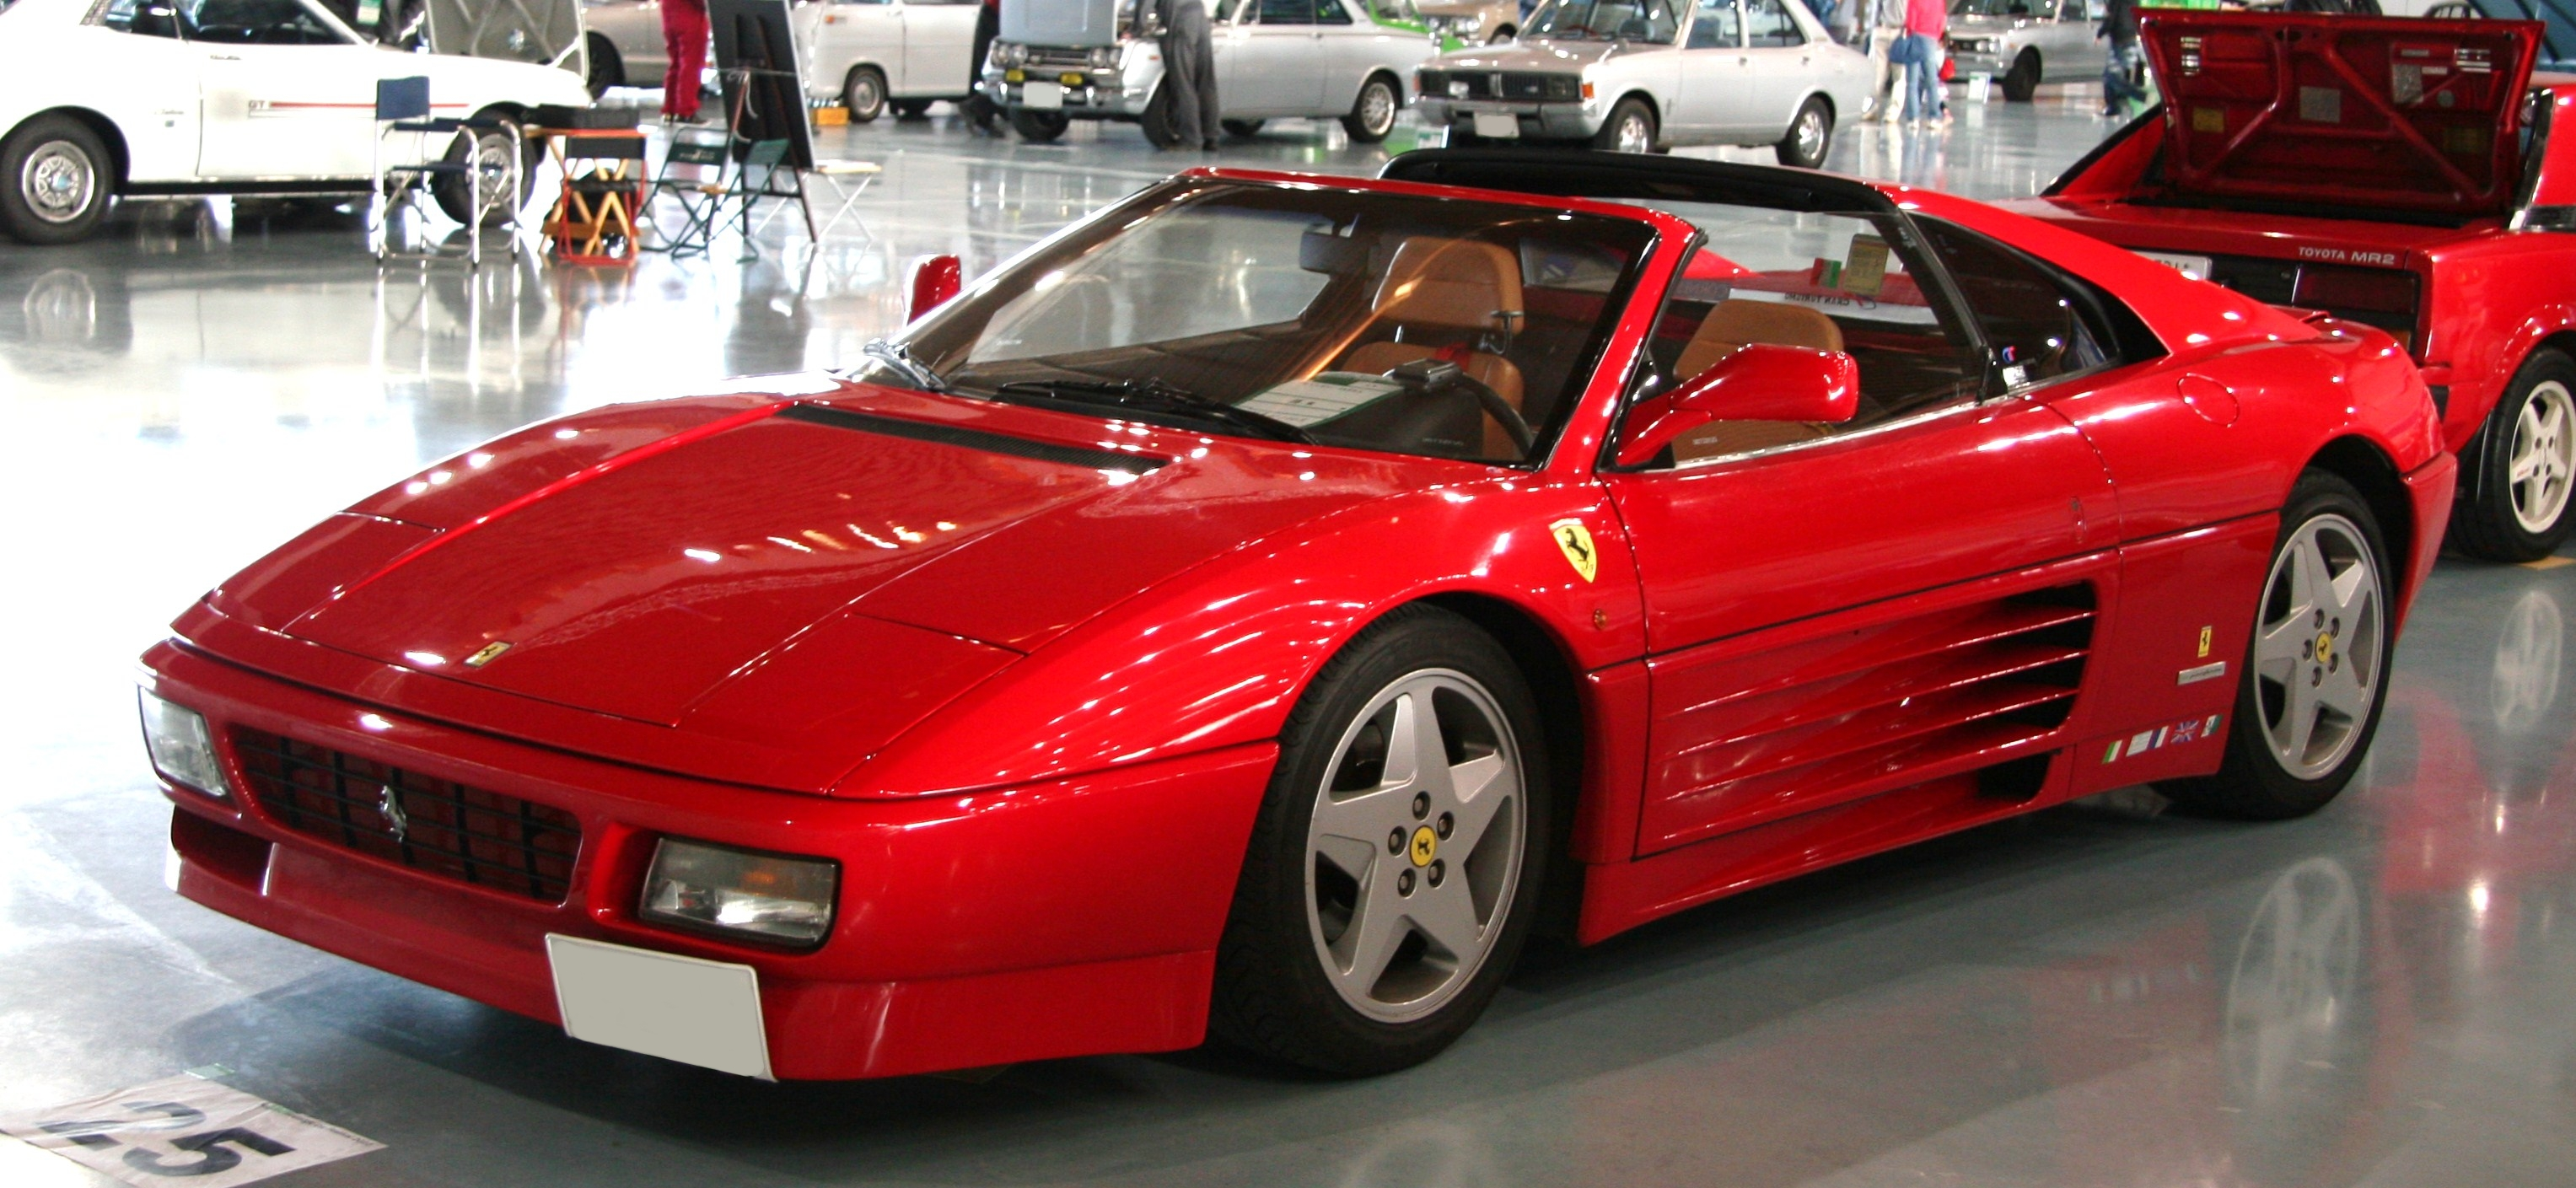 File:Ferrari 348ts.jpg - Wikimedia Commons